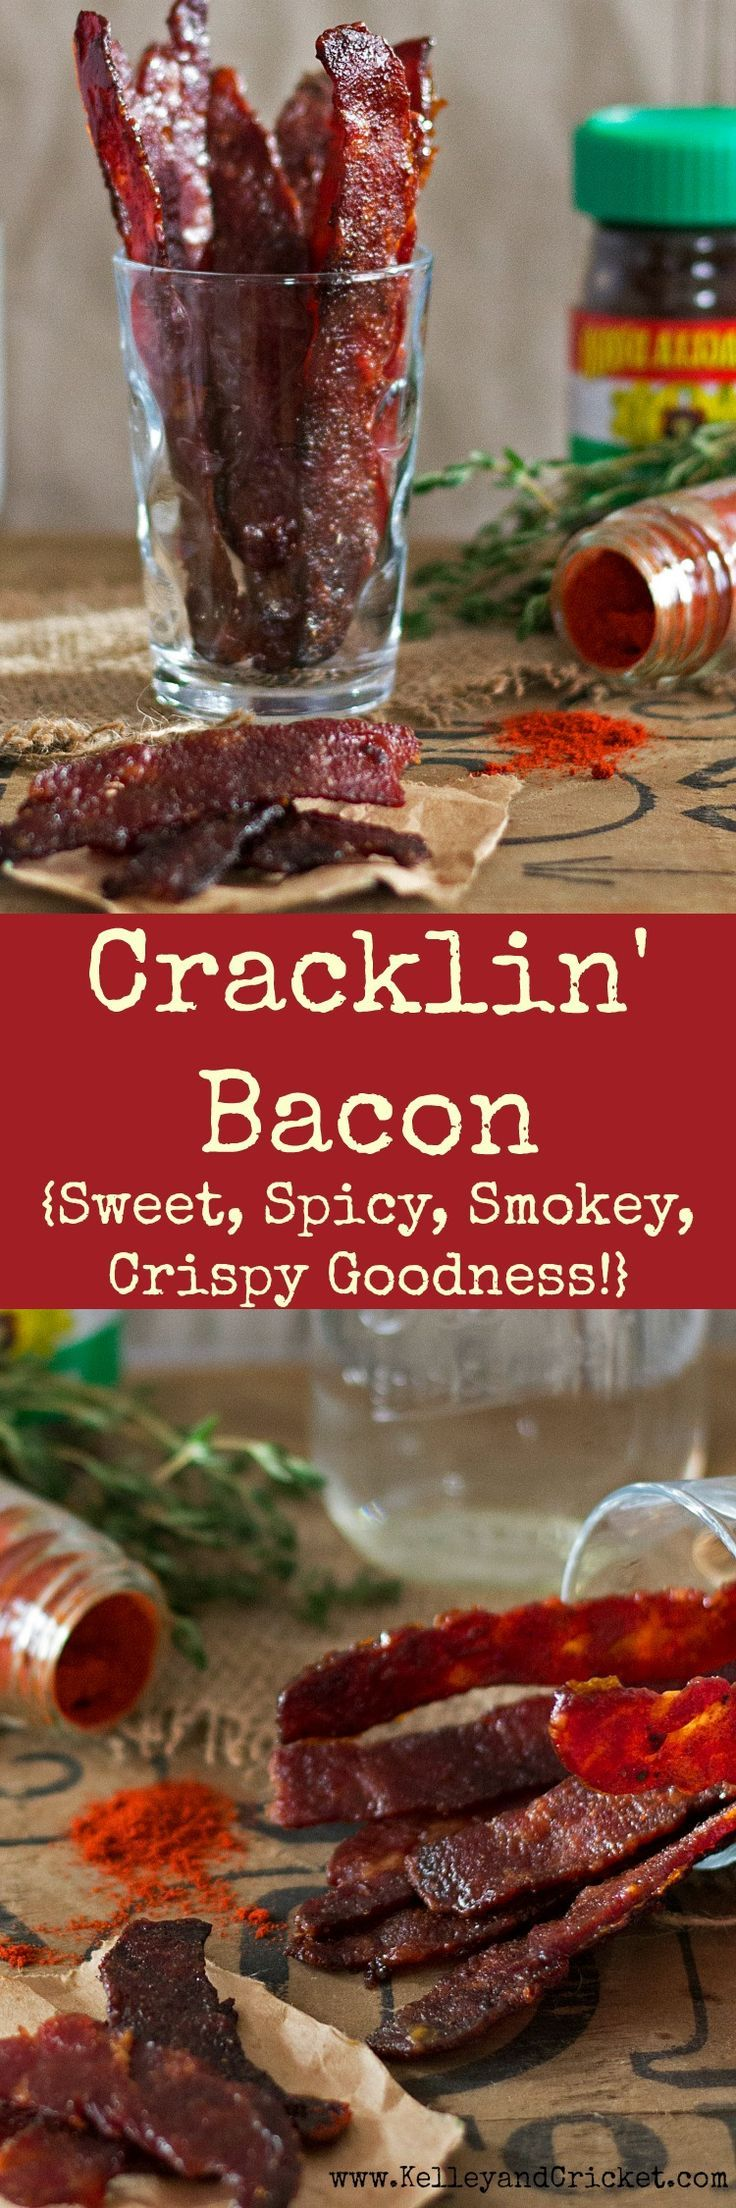 This Cracklin' Bacon is SO ADDICTIVE! The cooking method ensures it's super crispy! The flavors are the perfect combo of sweet-salty-smokey. It's super easy to make and contains no refined sugars and no bad-for-you ingredients! {Grain-fee, Gluten-free, Paleo, Pegan}